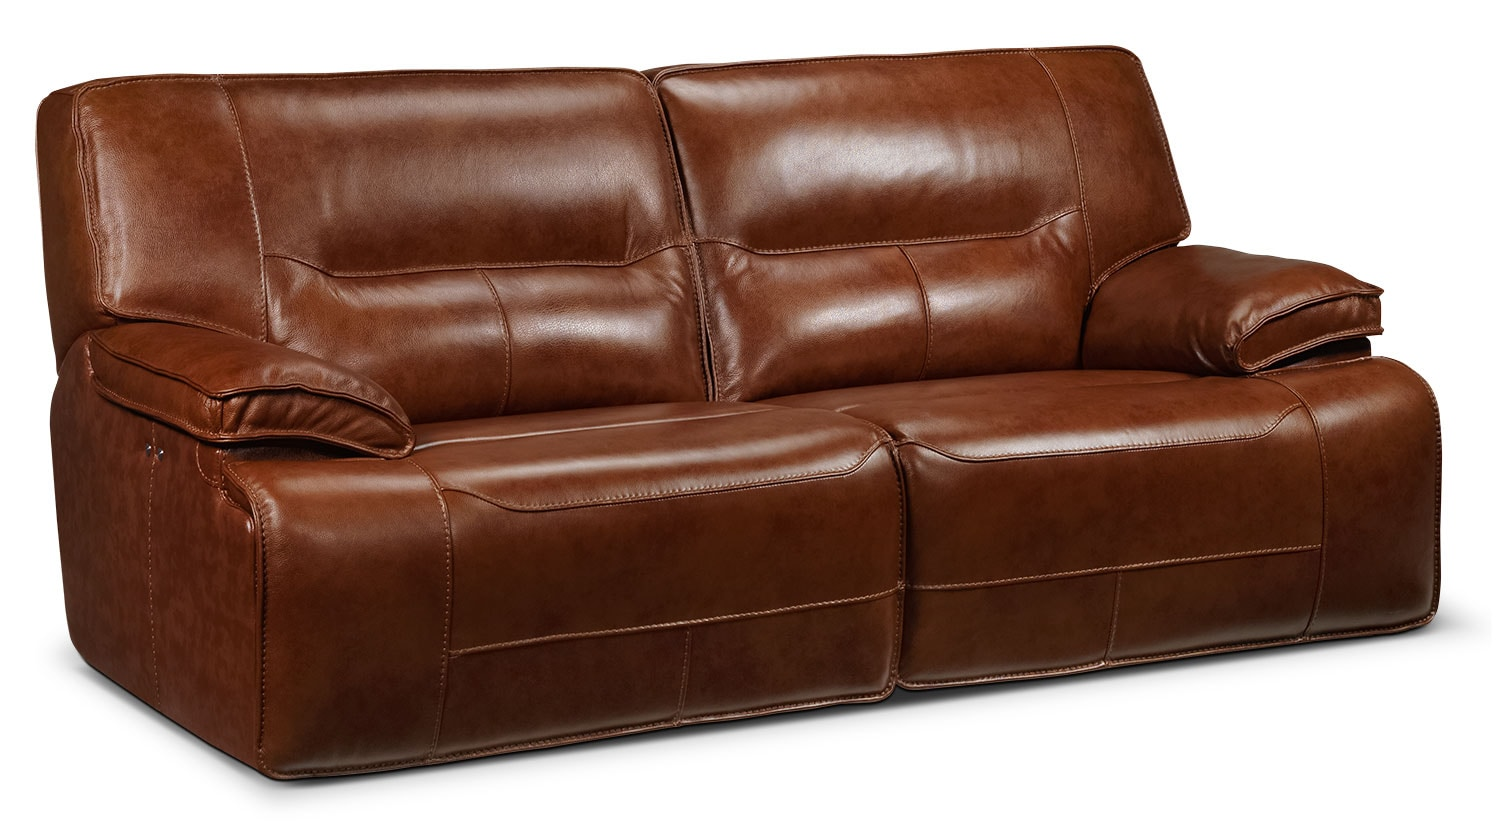 Baxter Power Reclining Sofa - Chestnut